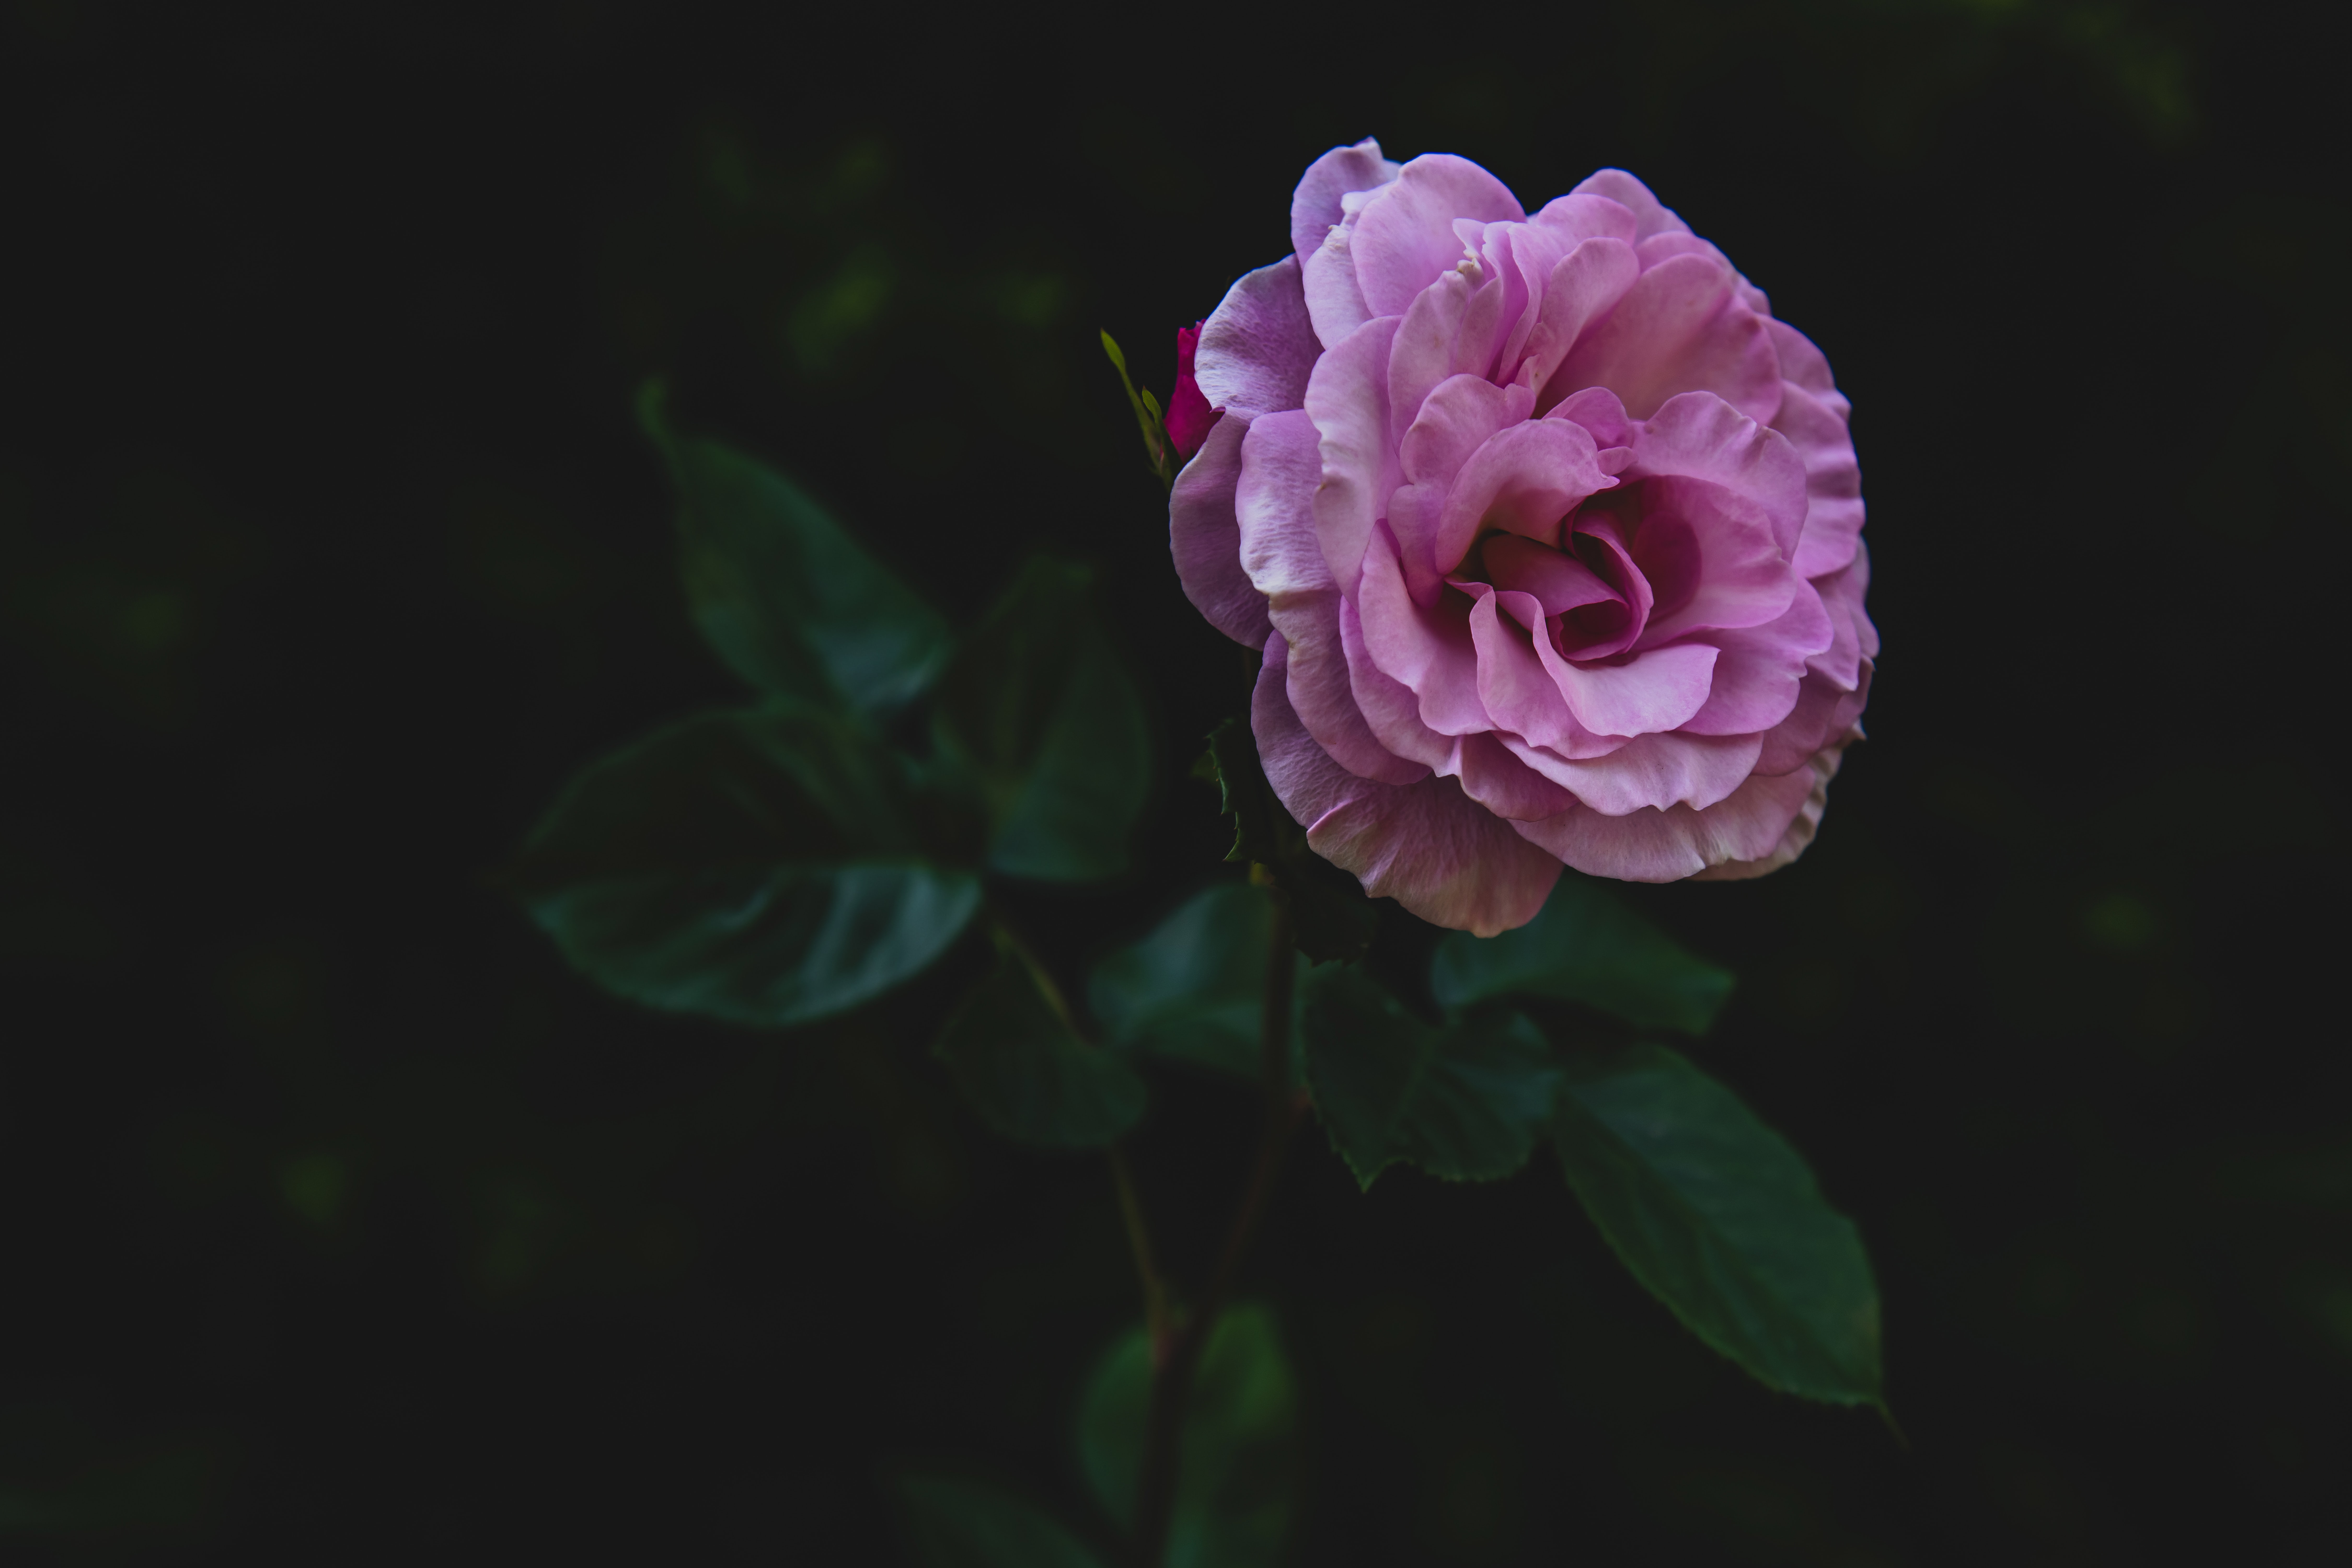 pink rose flower with green leaves